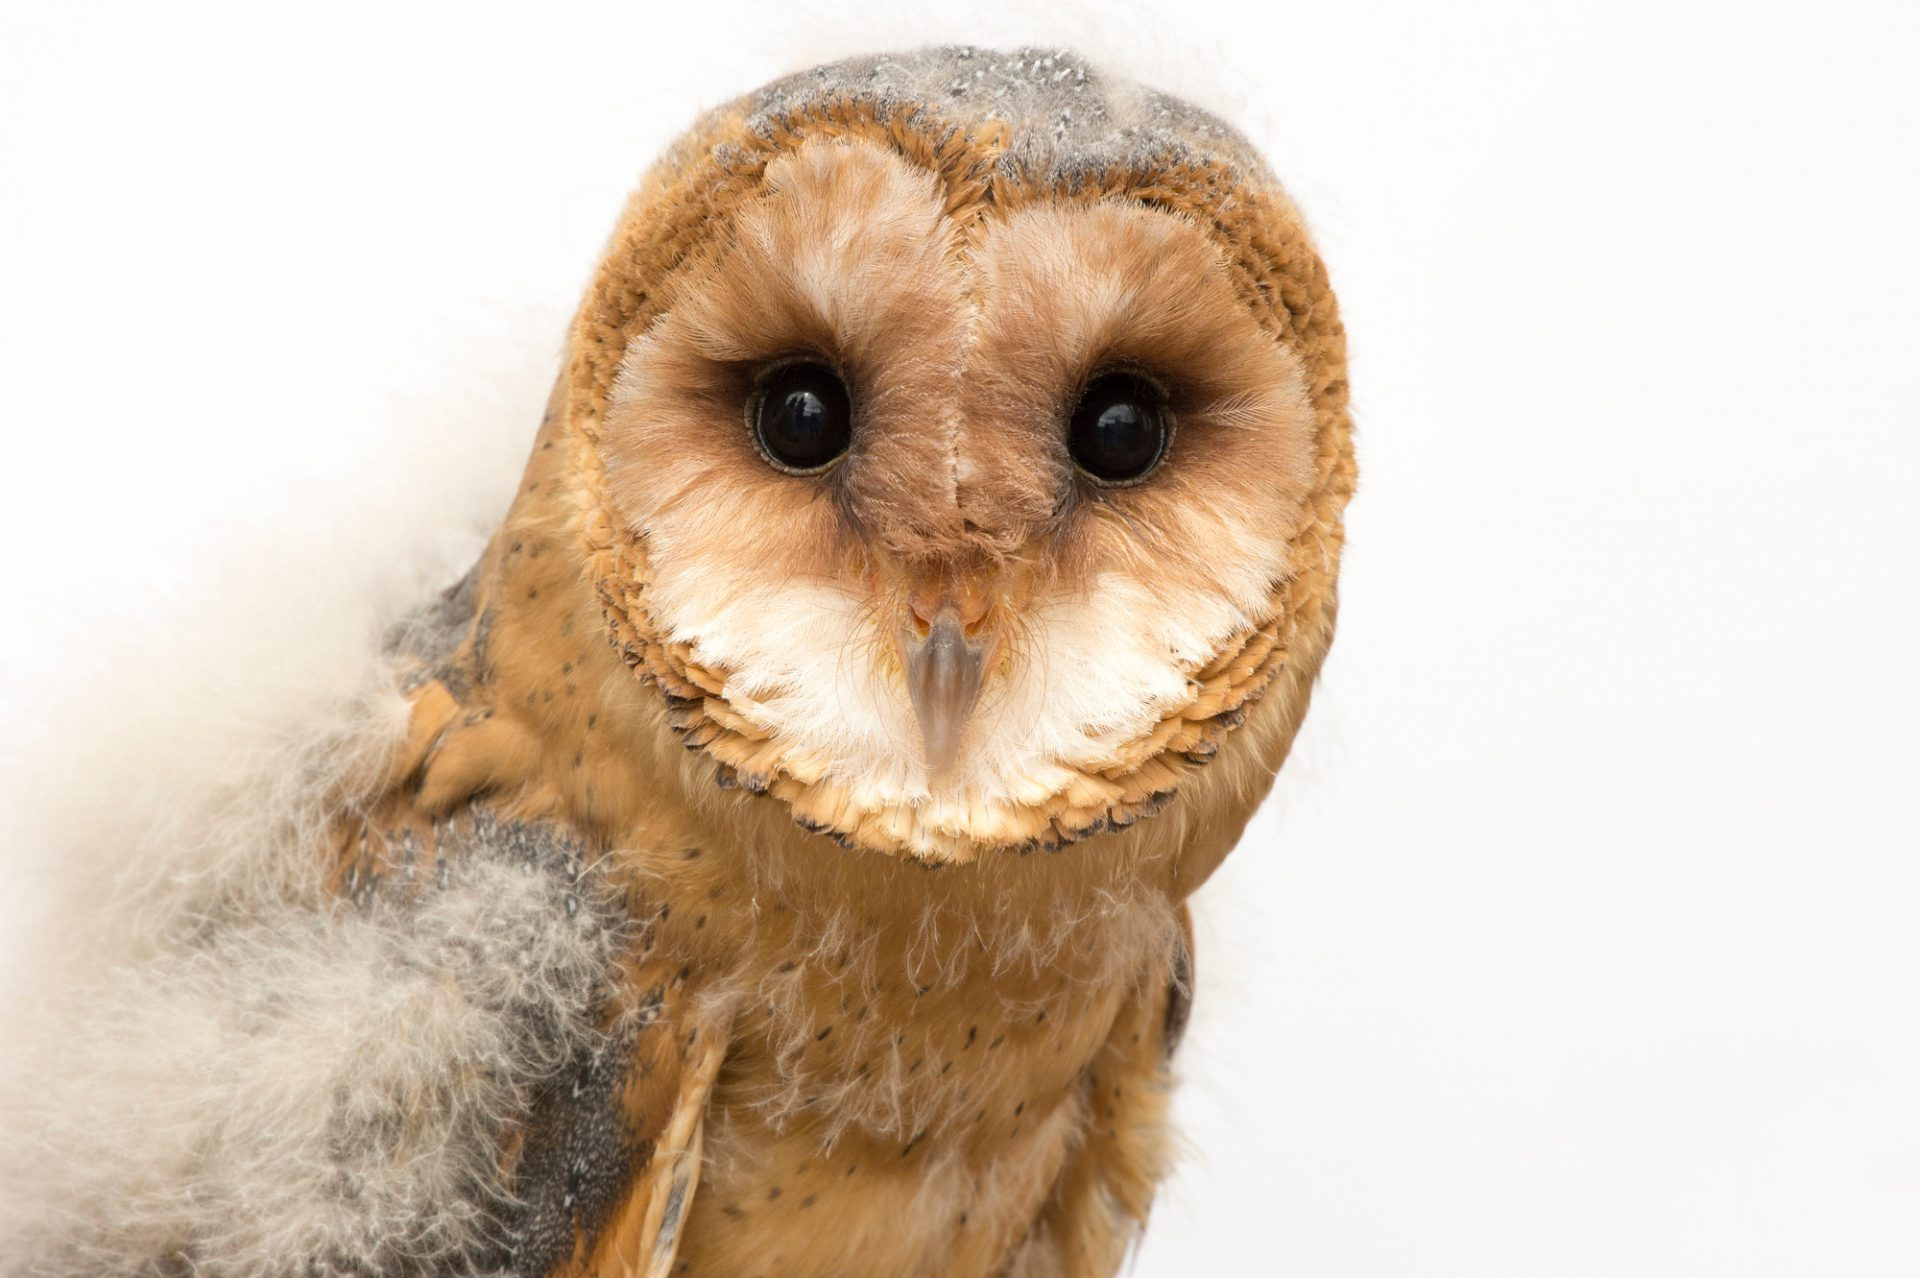 Photo: A fledgling European barn owl (Tyto alba guttata) from the Plzen Zoo in the Czech Republic.